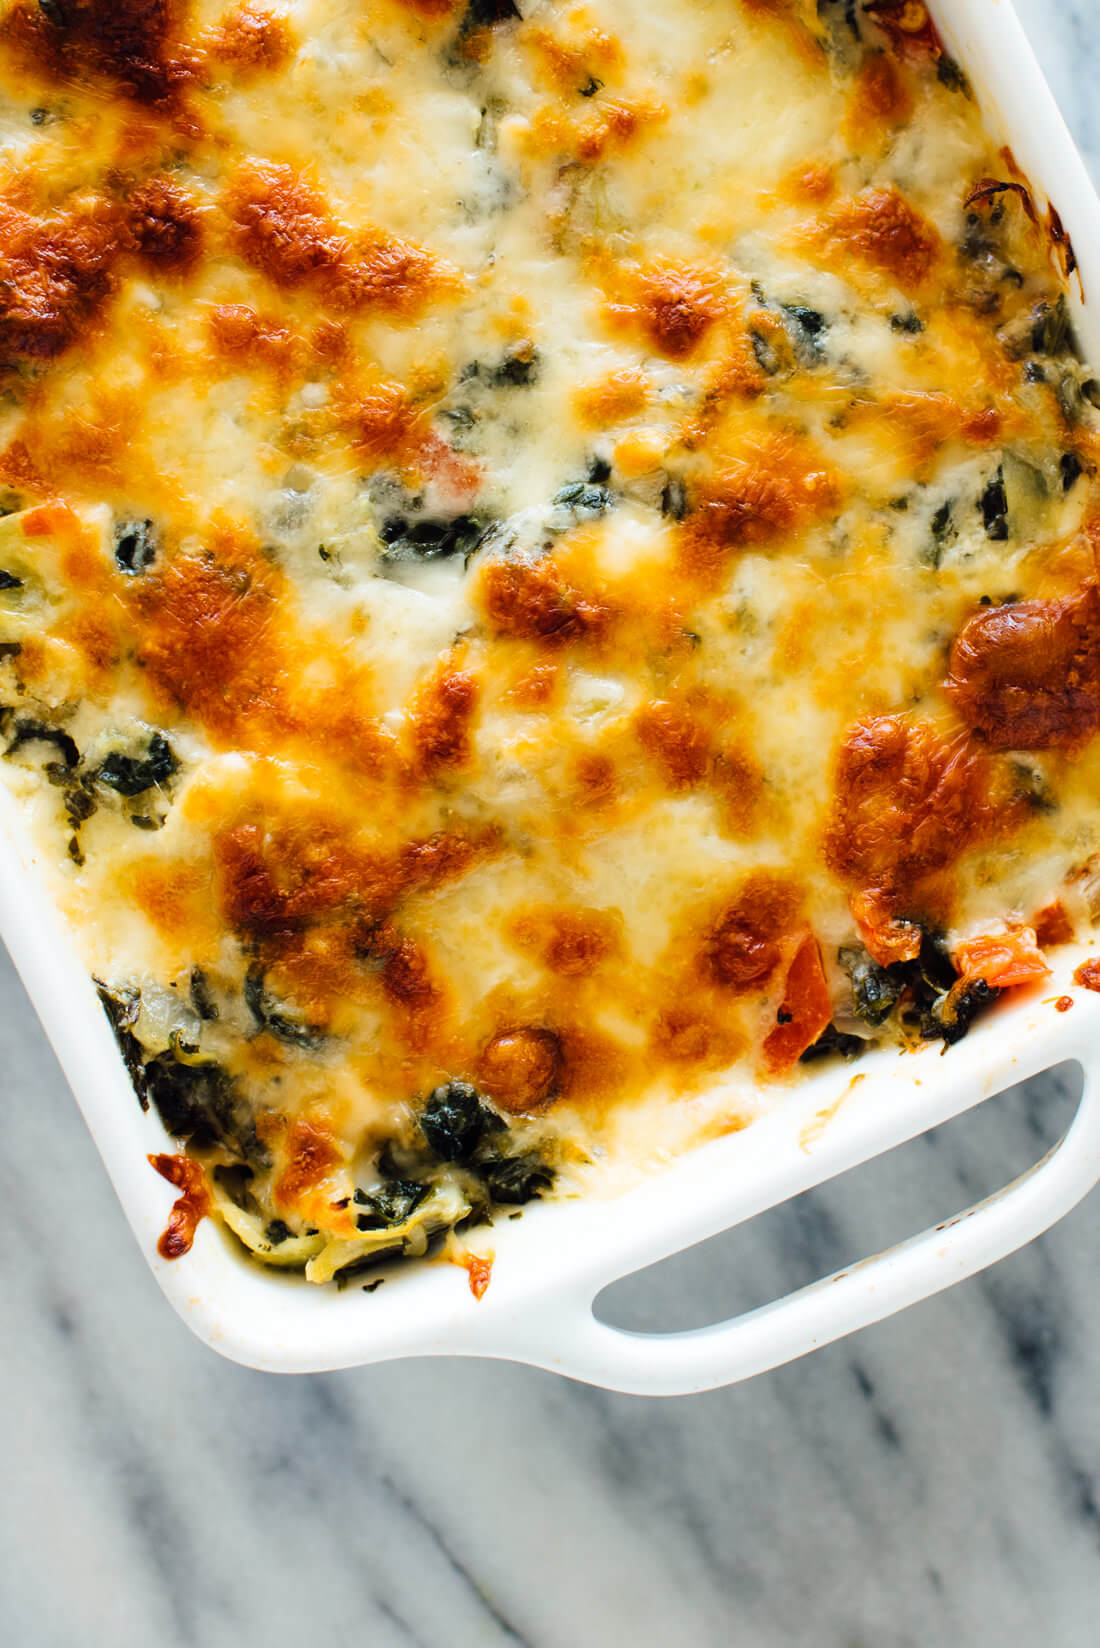 Baked Spinach & Artichoke Dip Recipe - Cookie and Kate